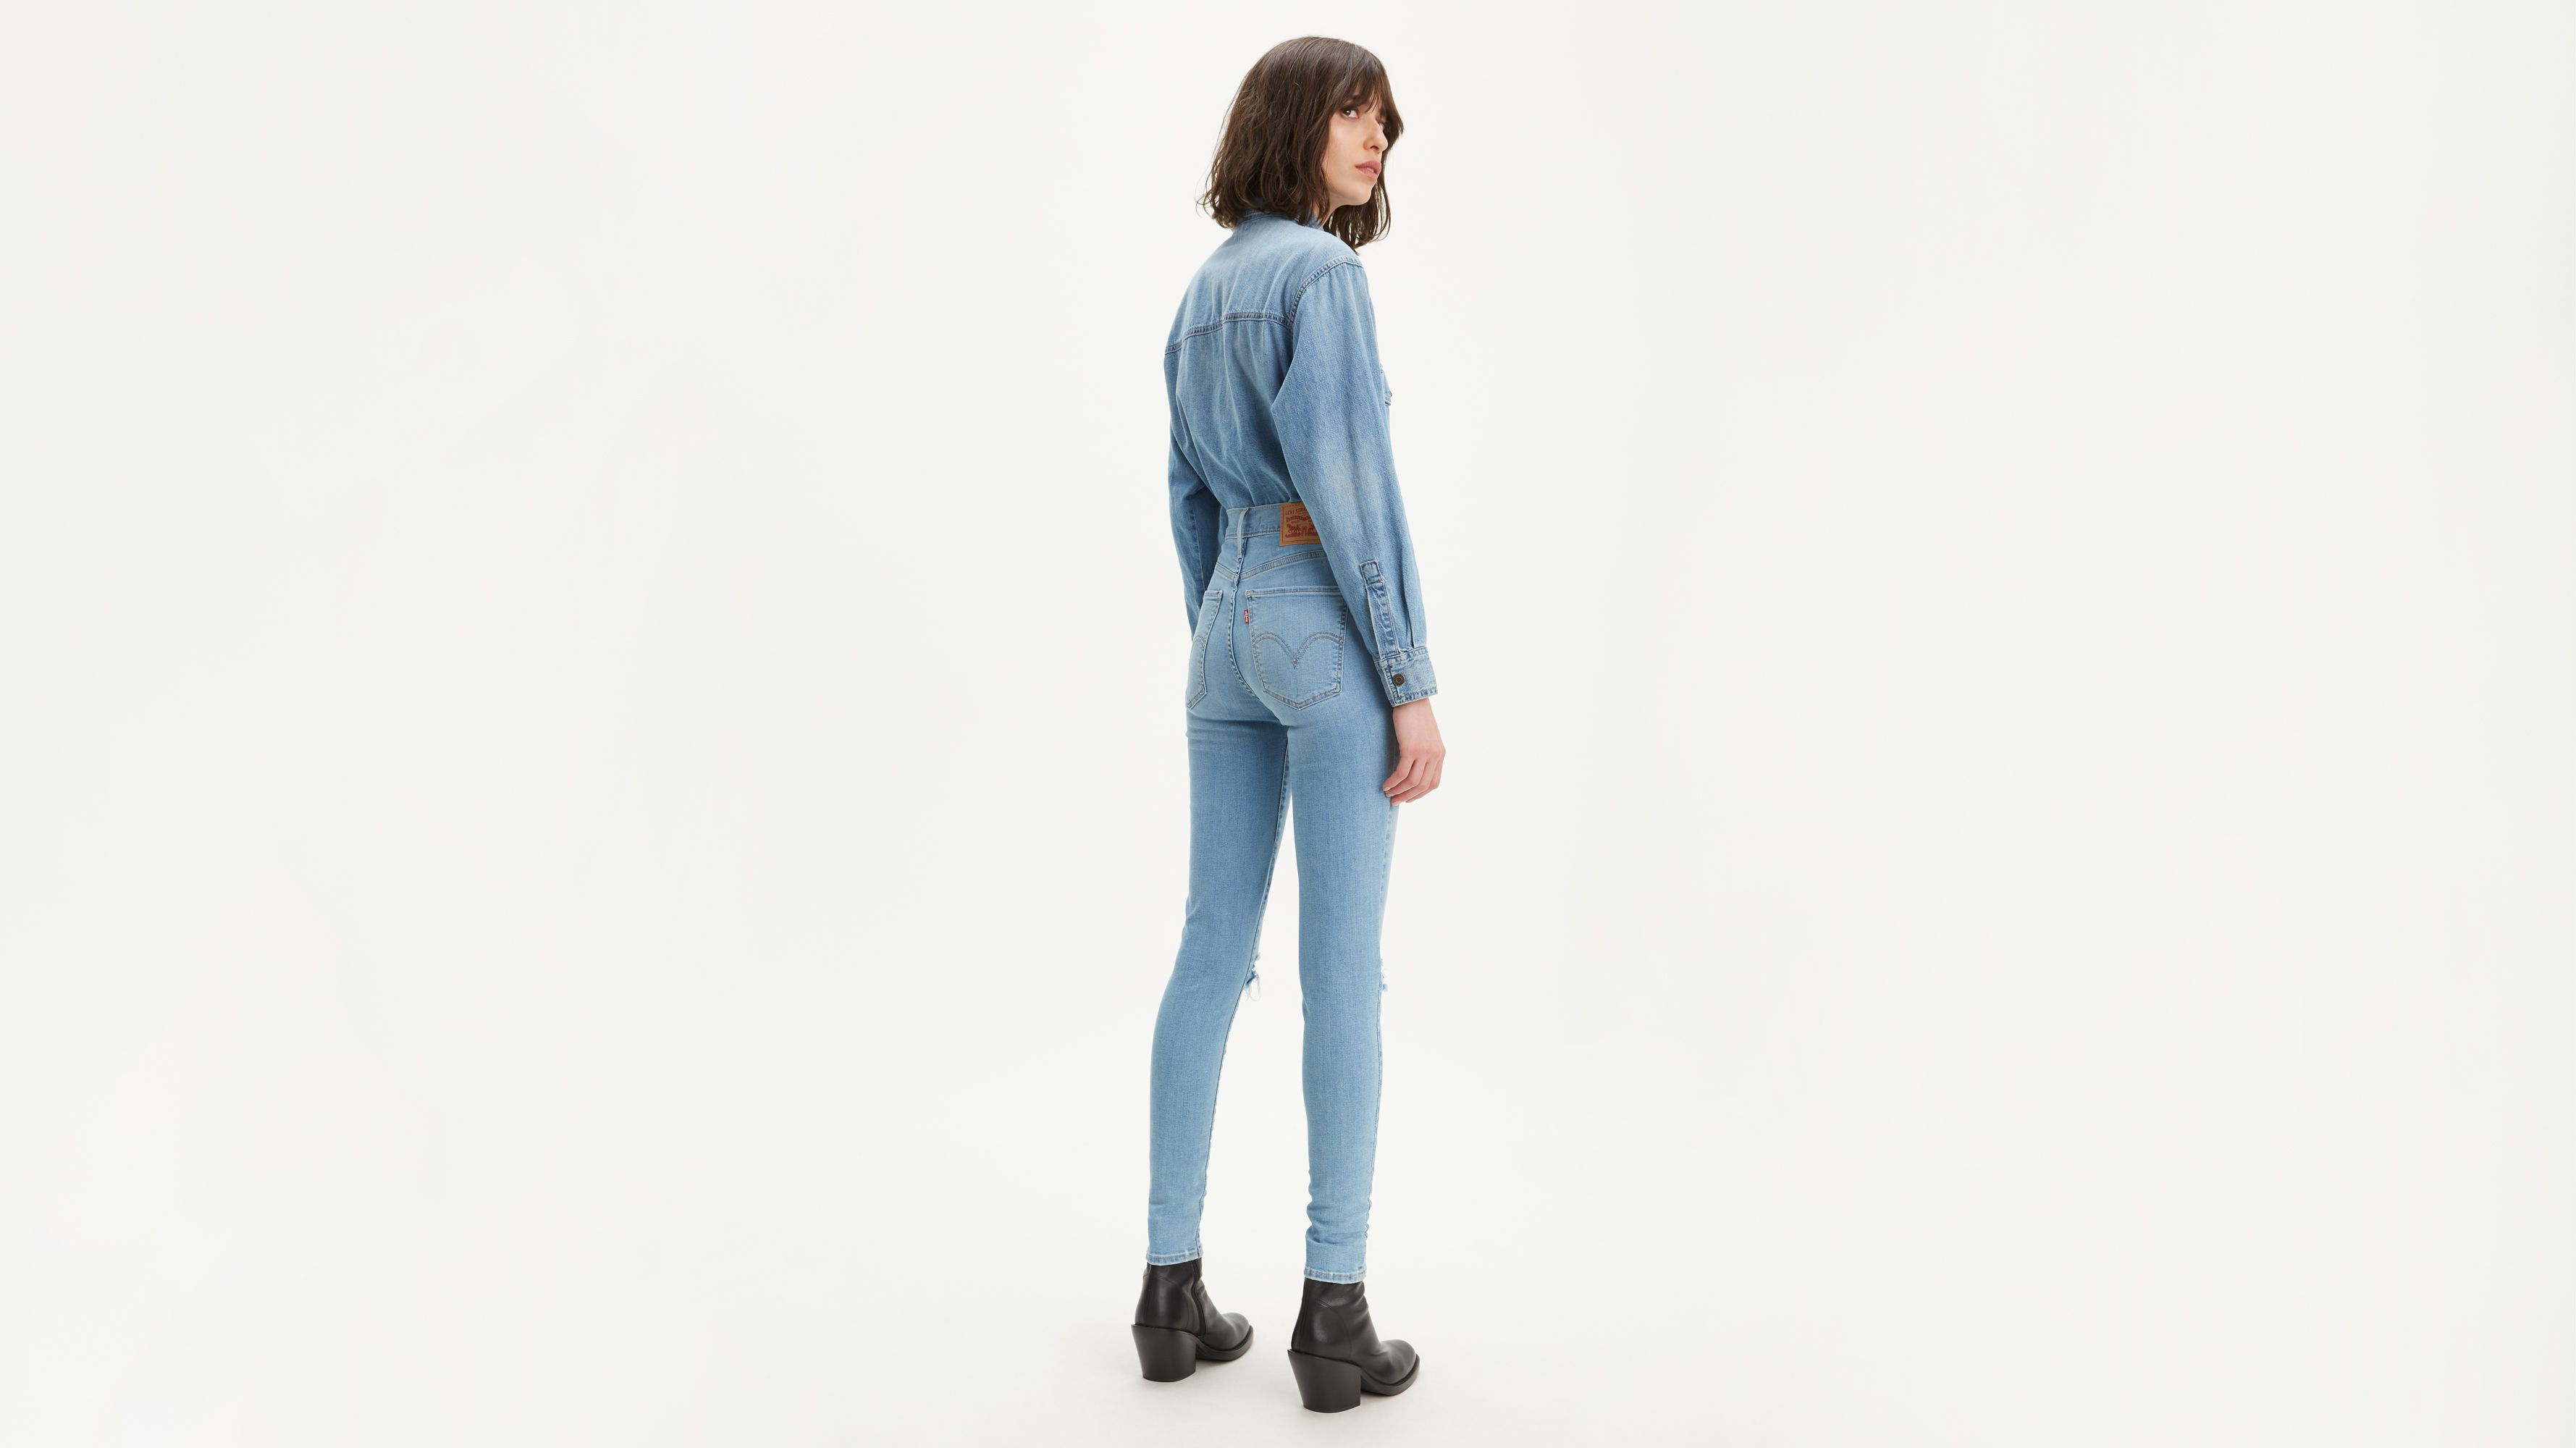 Levi's Skinny Jeans Mile High Super Skinny       RRP £85